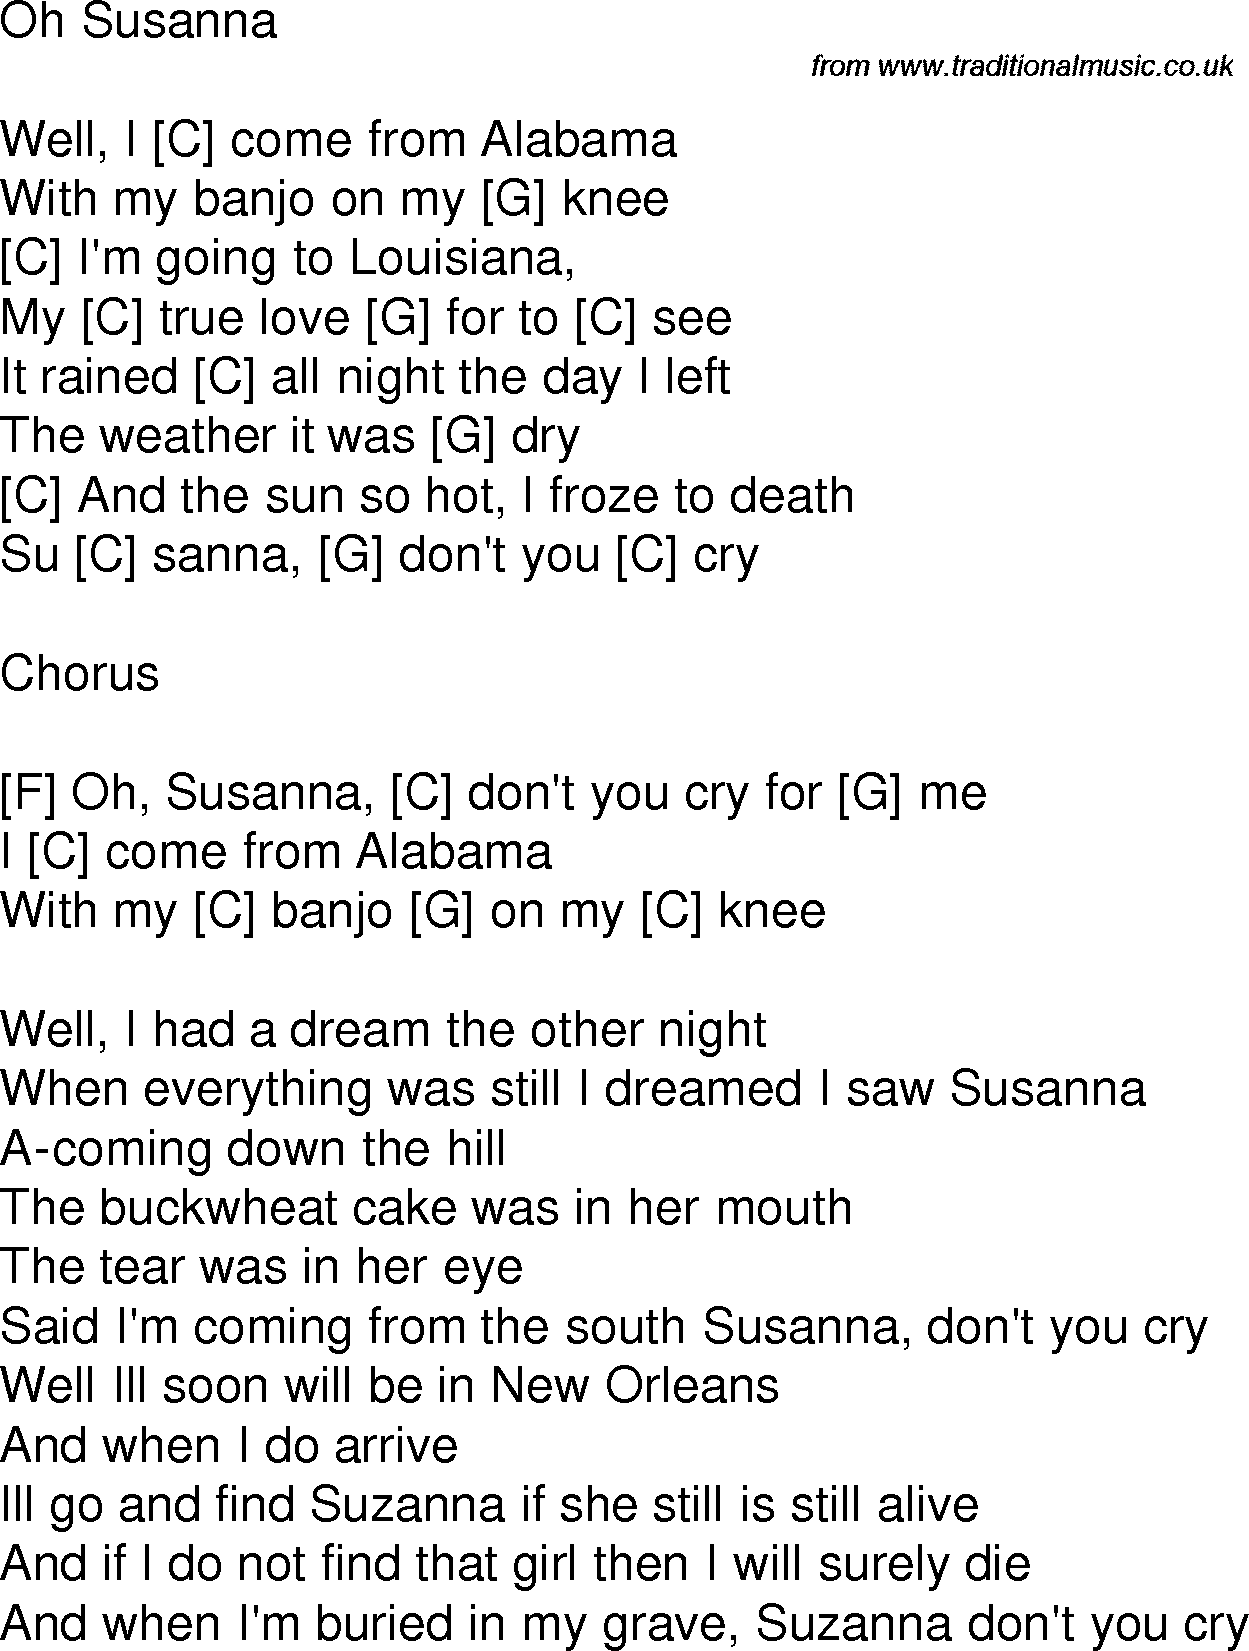 Old Time Song Lyrics With Guitar Chords For Oh Susanna C